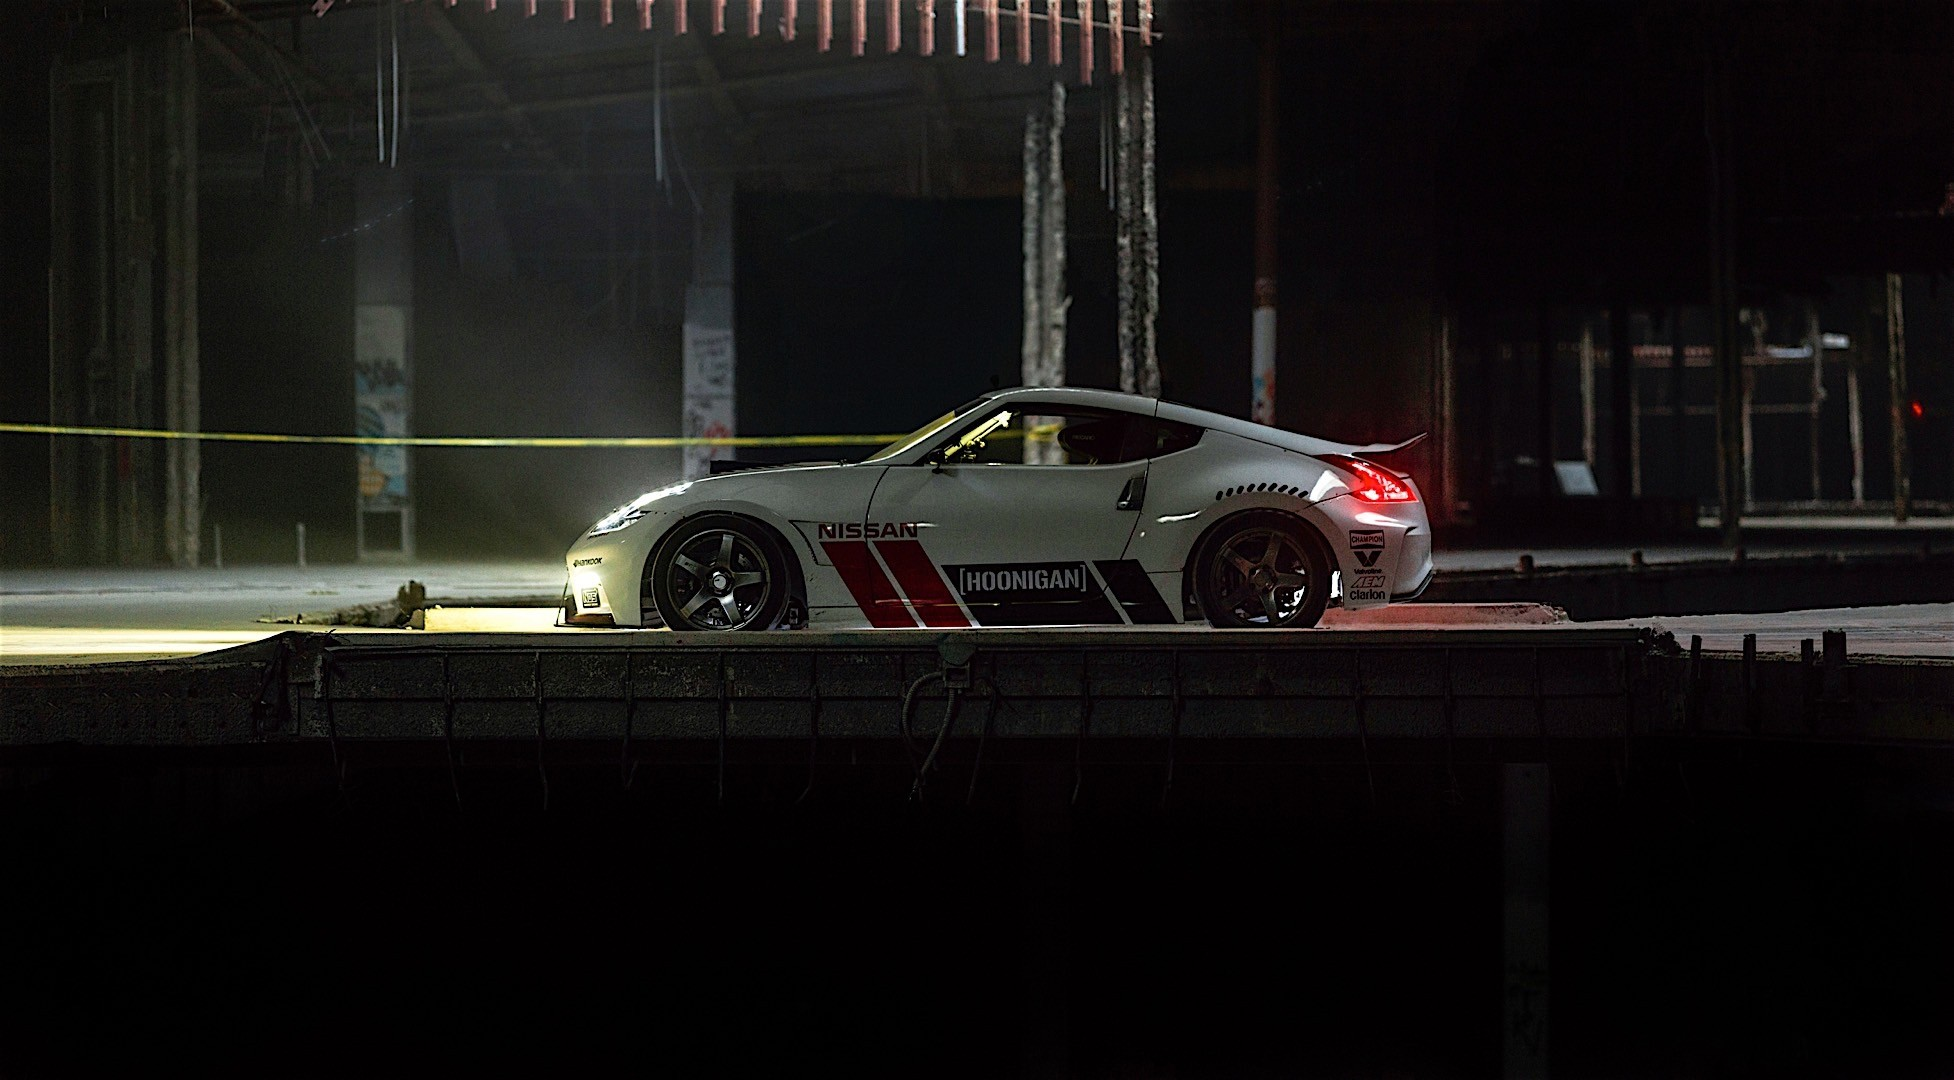 Aljzi X Ikwijui Vhzyjw likewise Rain Prisk Gtrvalmissss additionally Ds Racing Guardrails For Rc Track Driftmission as well Nissan Gtr further X Px Nissan Nissan Gtr R Nissan Skyline Nissan Skyline Gt R Skyline R. on nissan gt r drifting